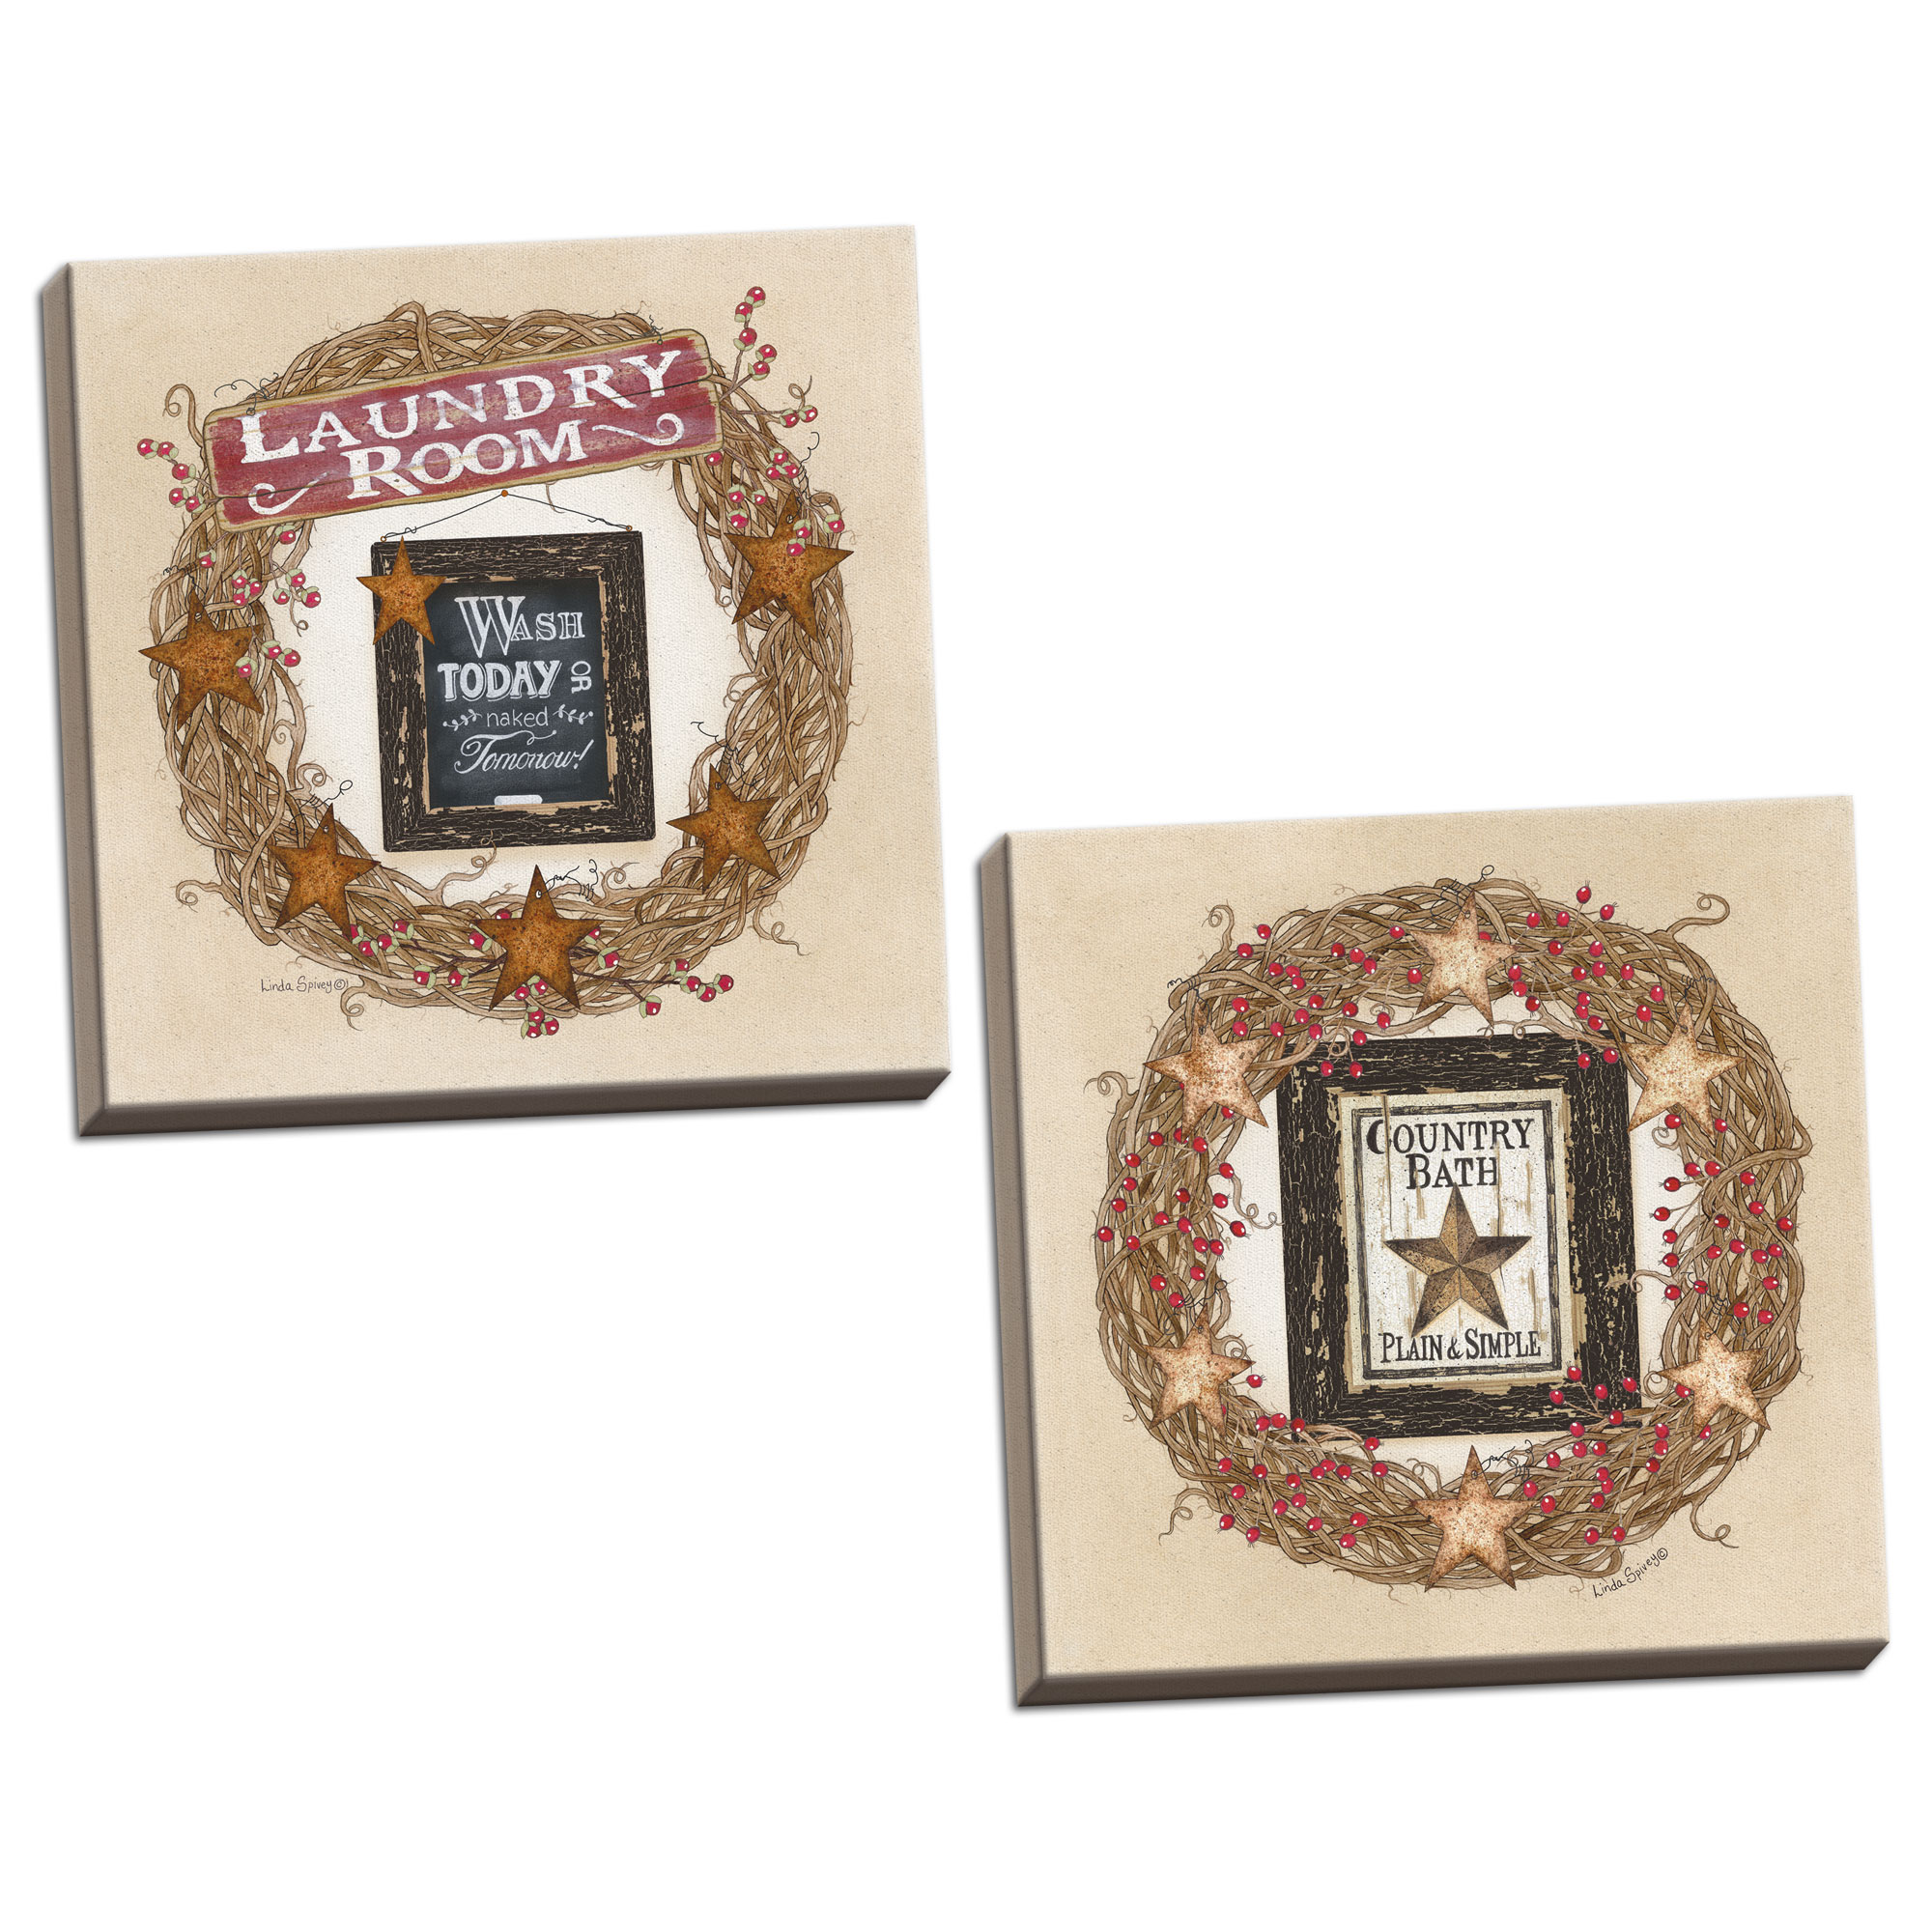 Gango Home Decor Country-Rustic Country Bath Wreath & Laundry Room Wreath by Linda Spivey (Ready to Hang); Two 12x12in Hand-Stretched Canvases